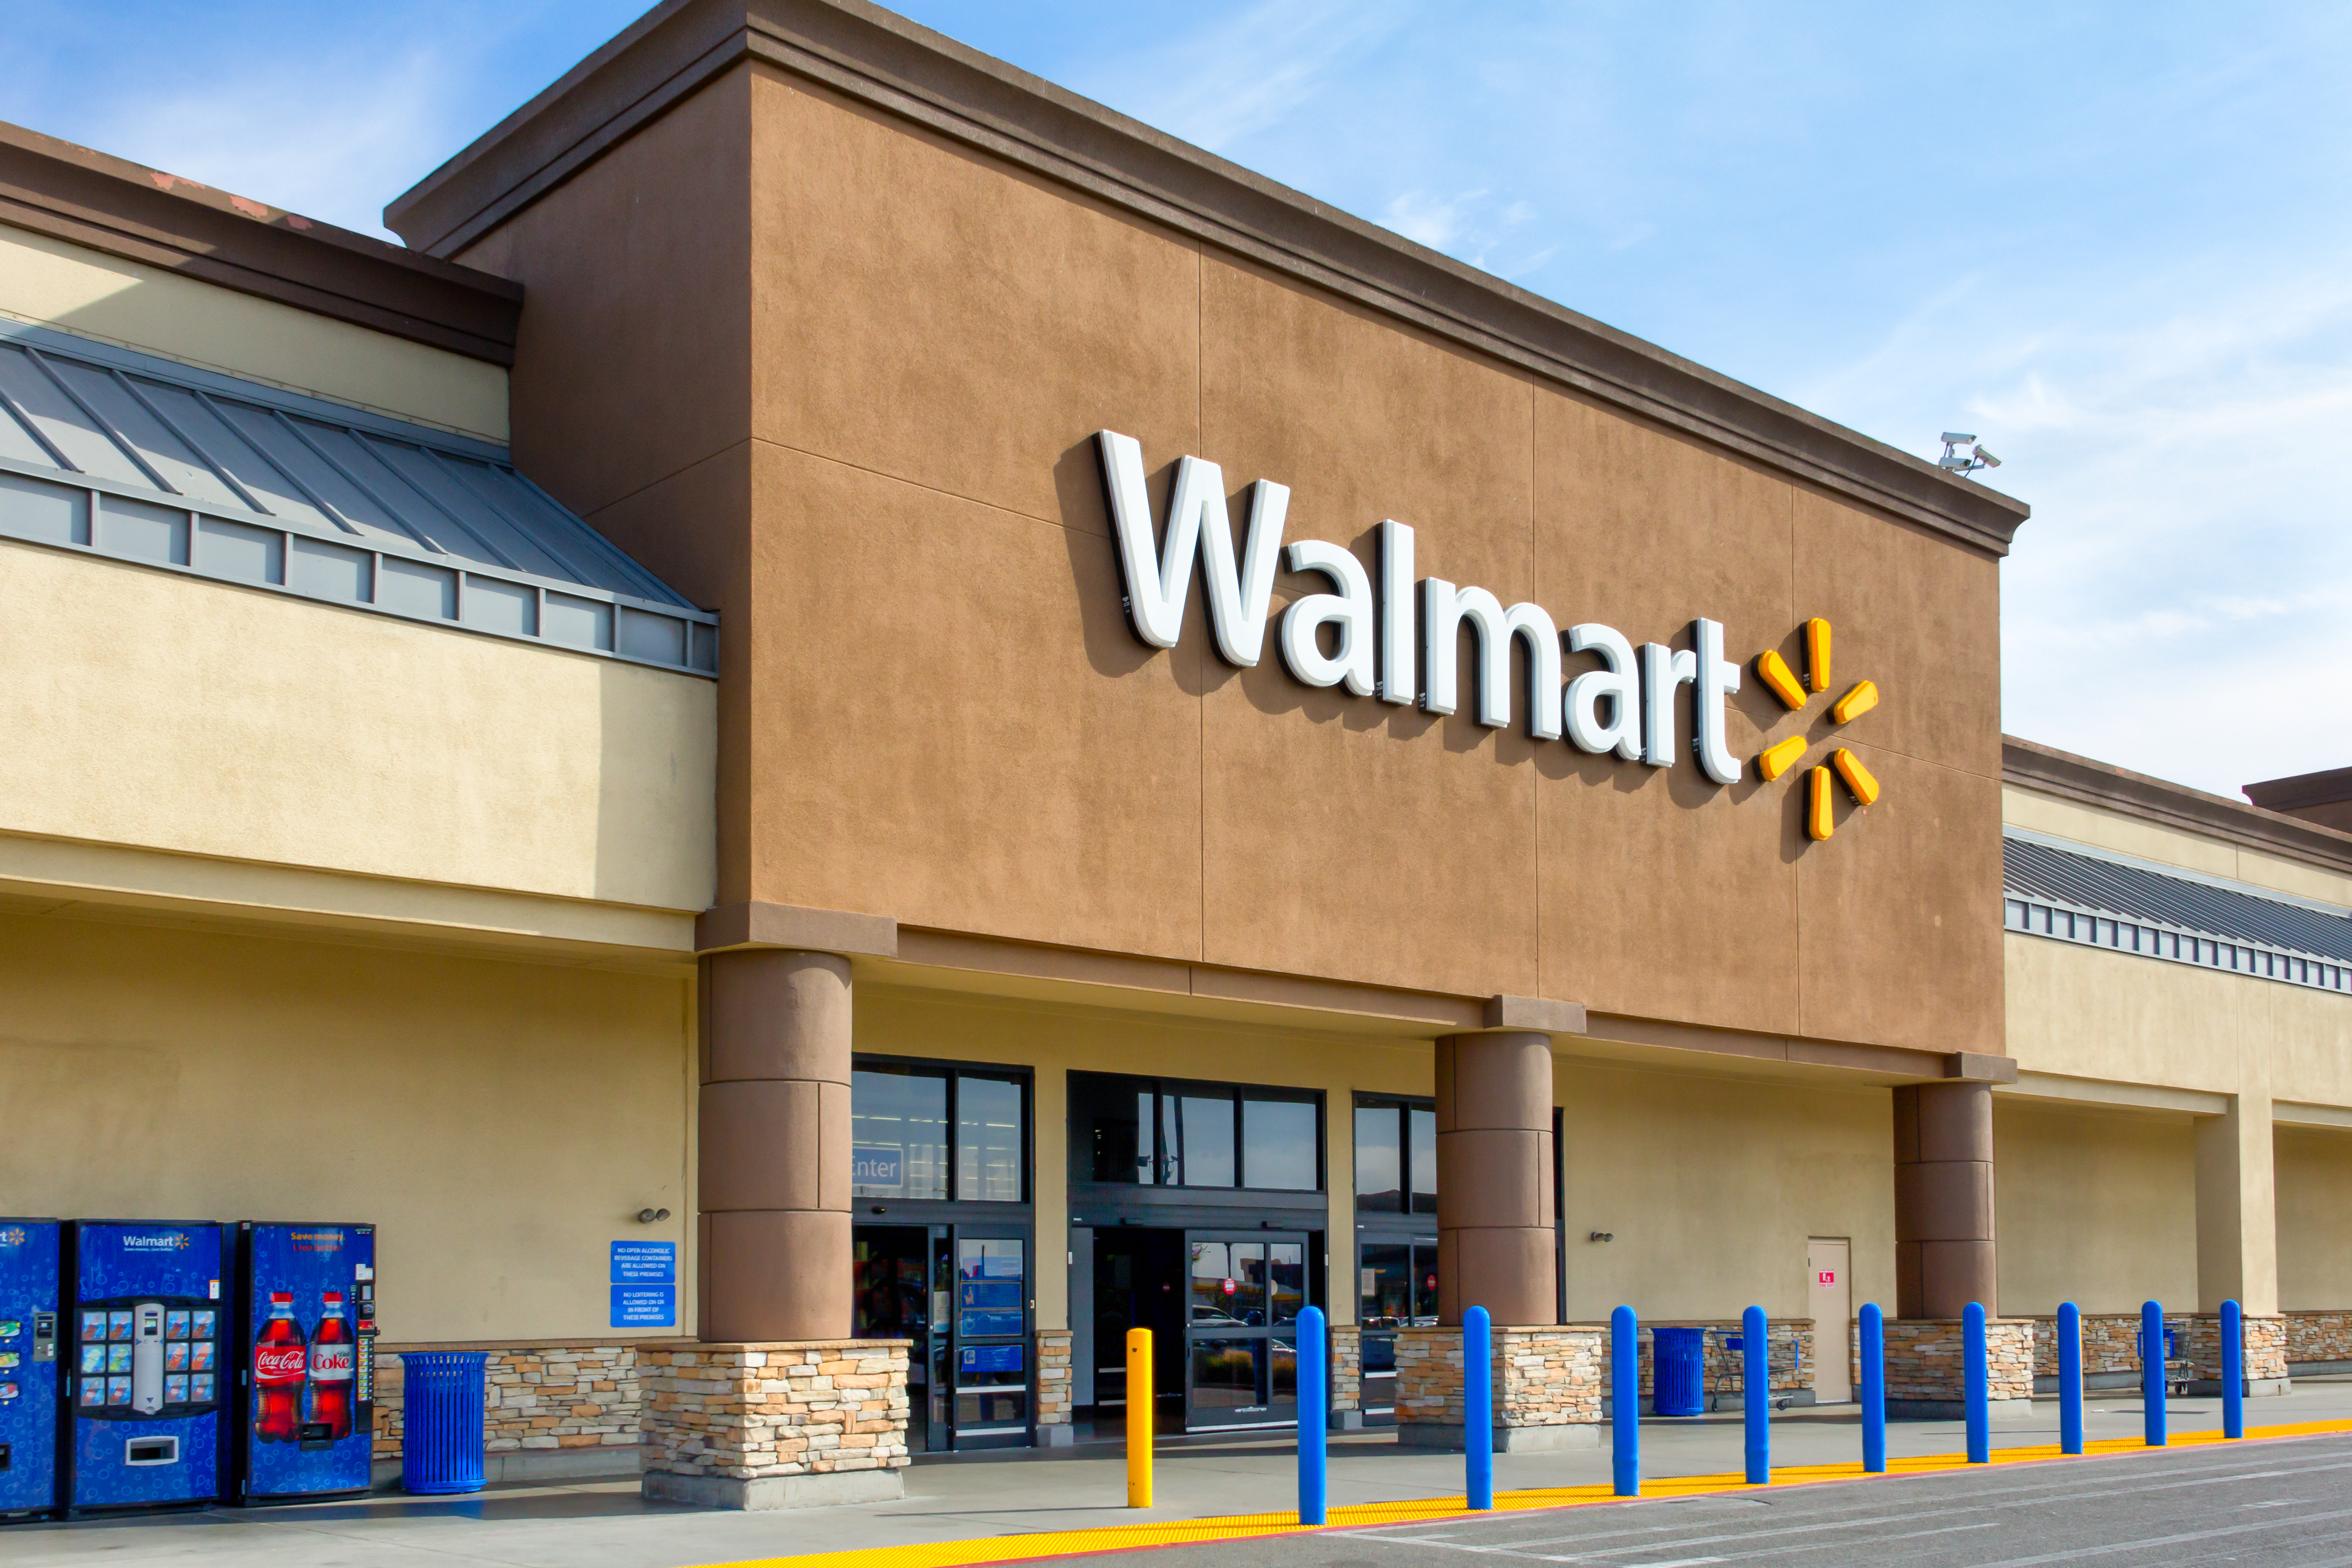 FCPA Docket: Wal-Mart CEO to be deposed by shareholders